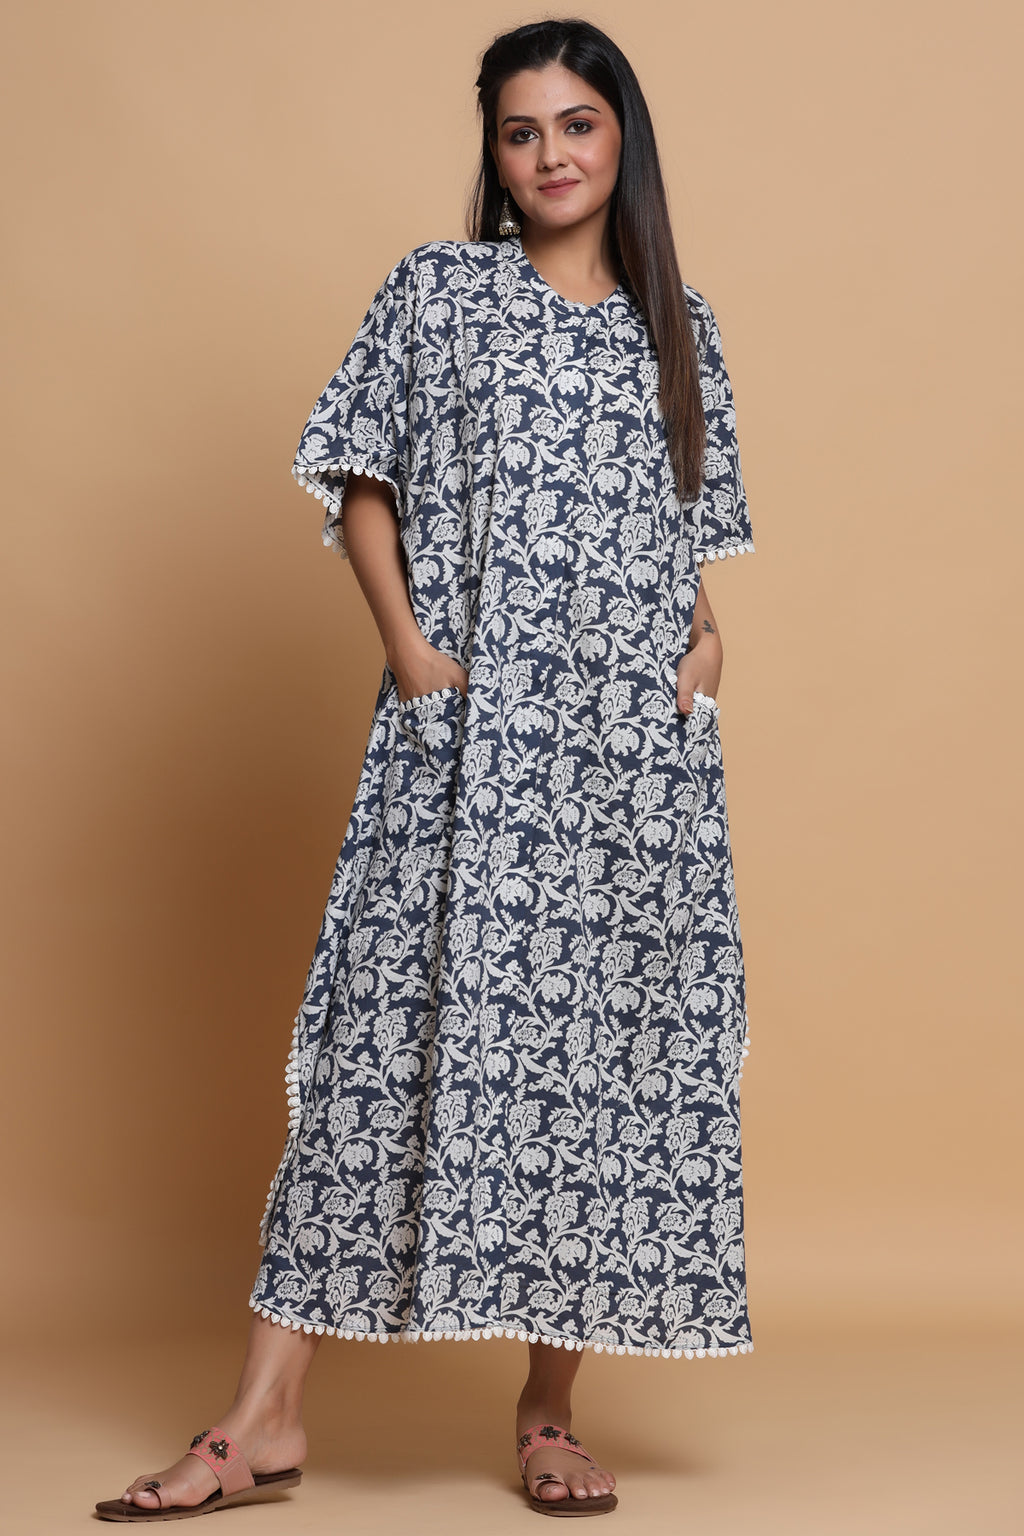 COTTON FRONT OPEN KAFTAN IN FLORAL BLUE COLOUR